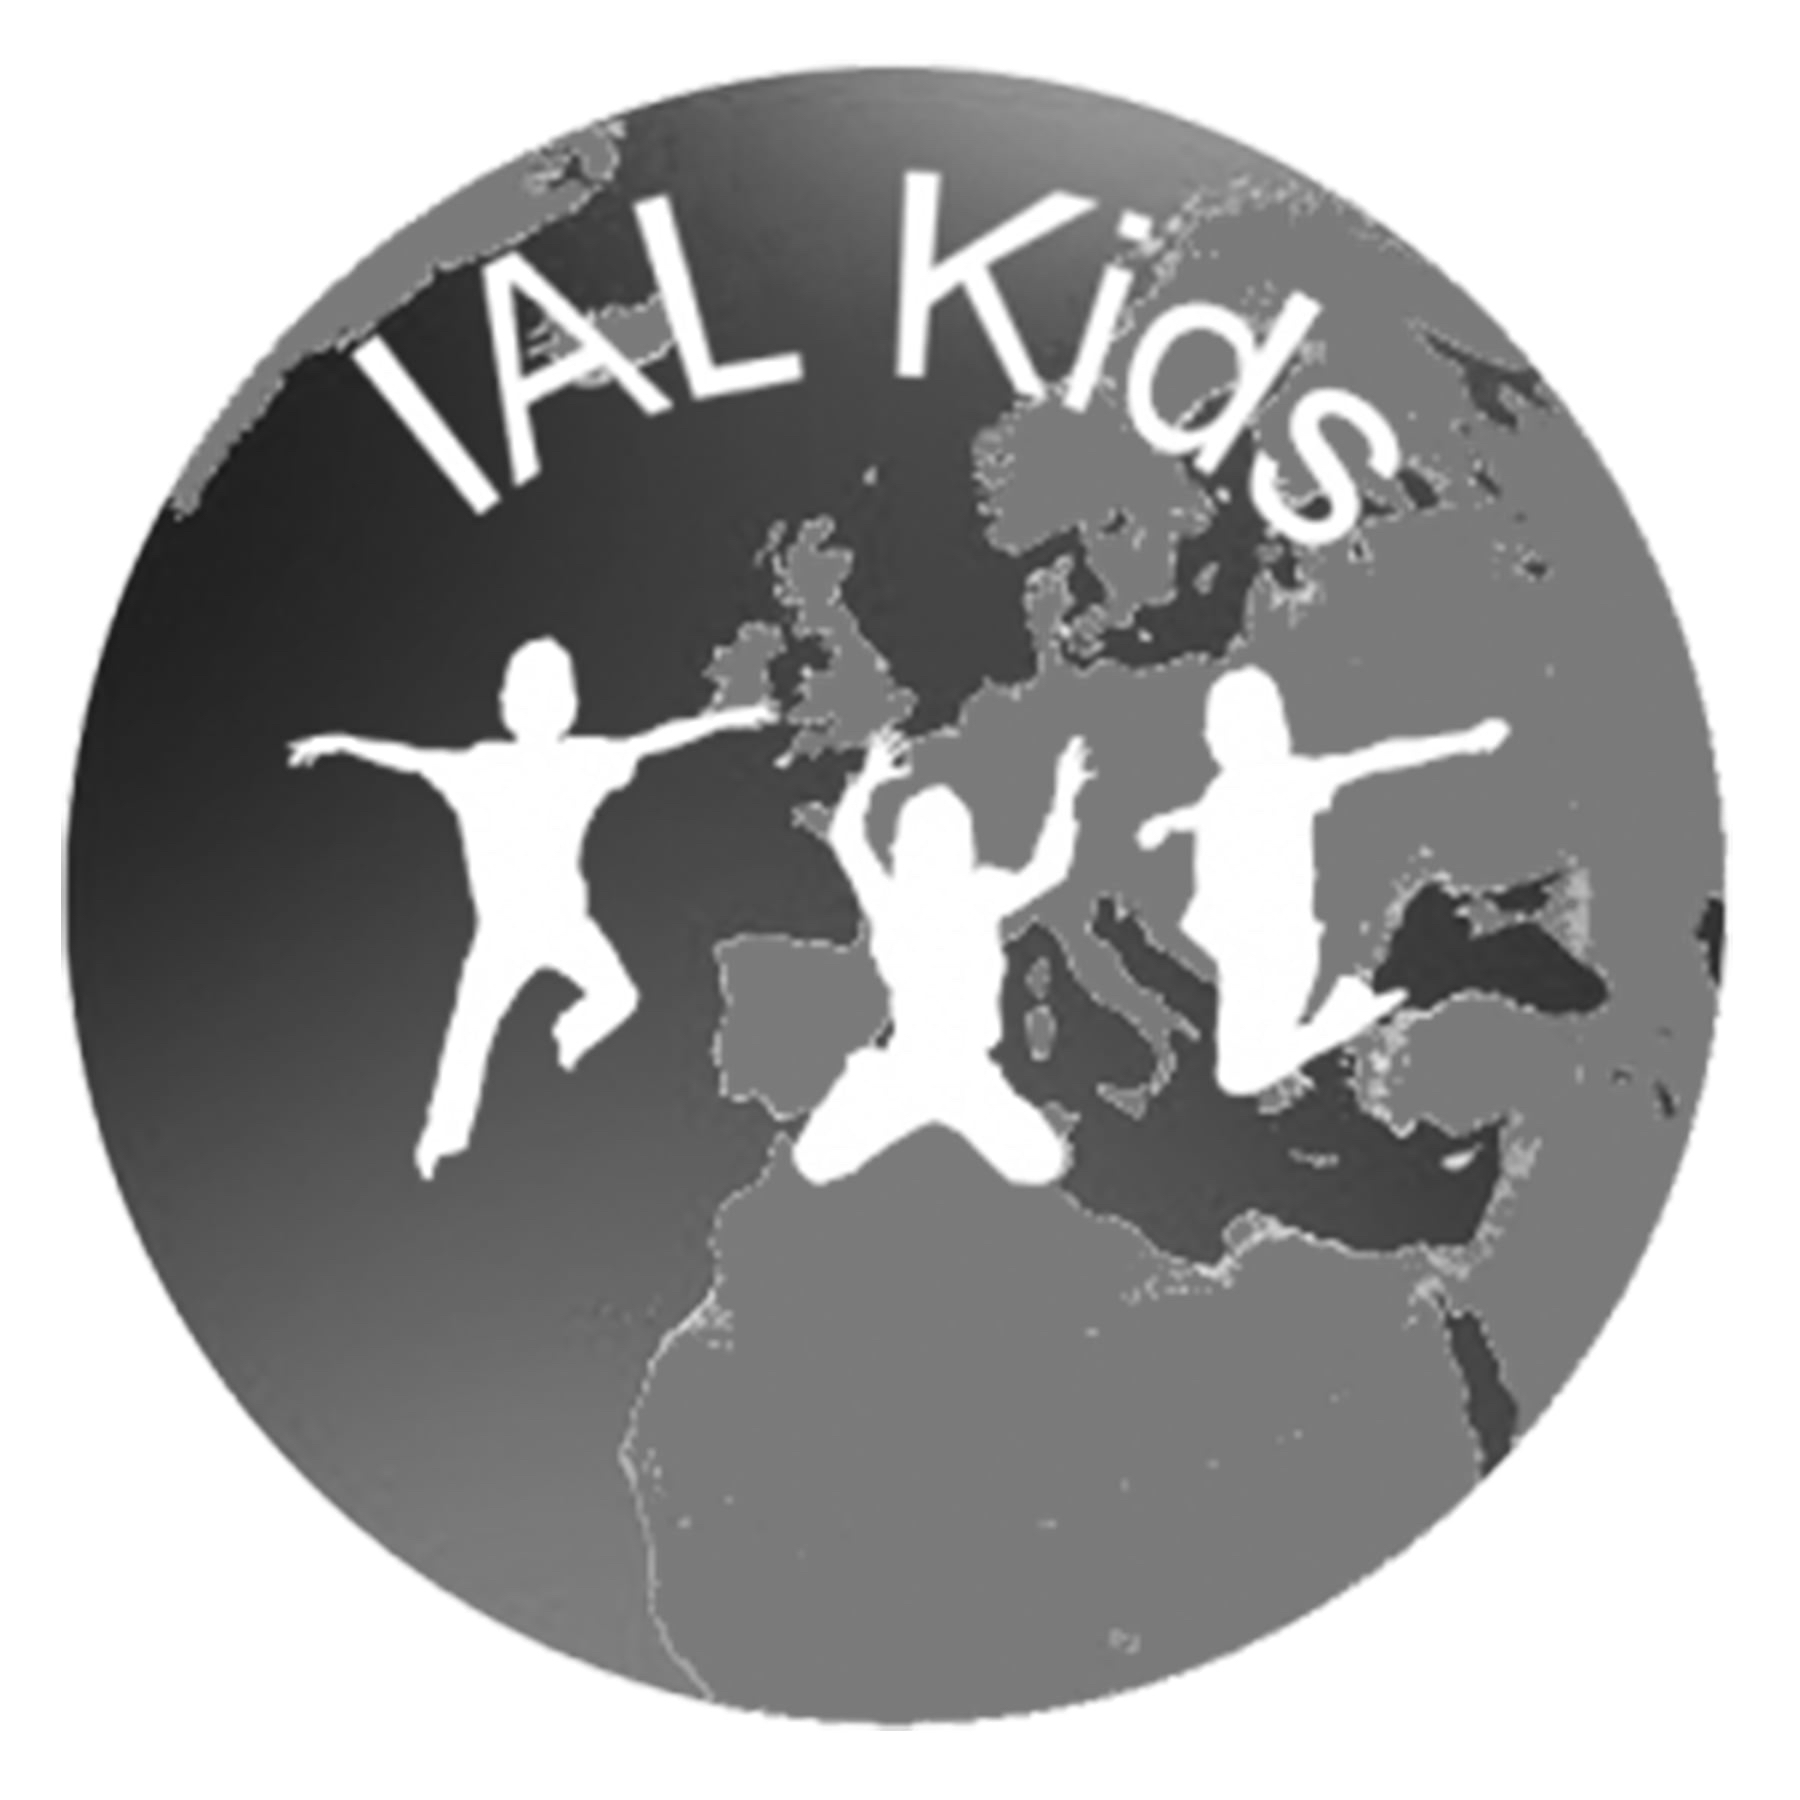 International-actors-logo.jpg